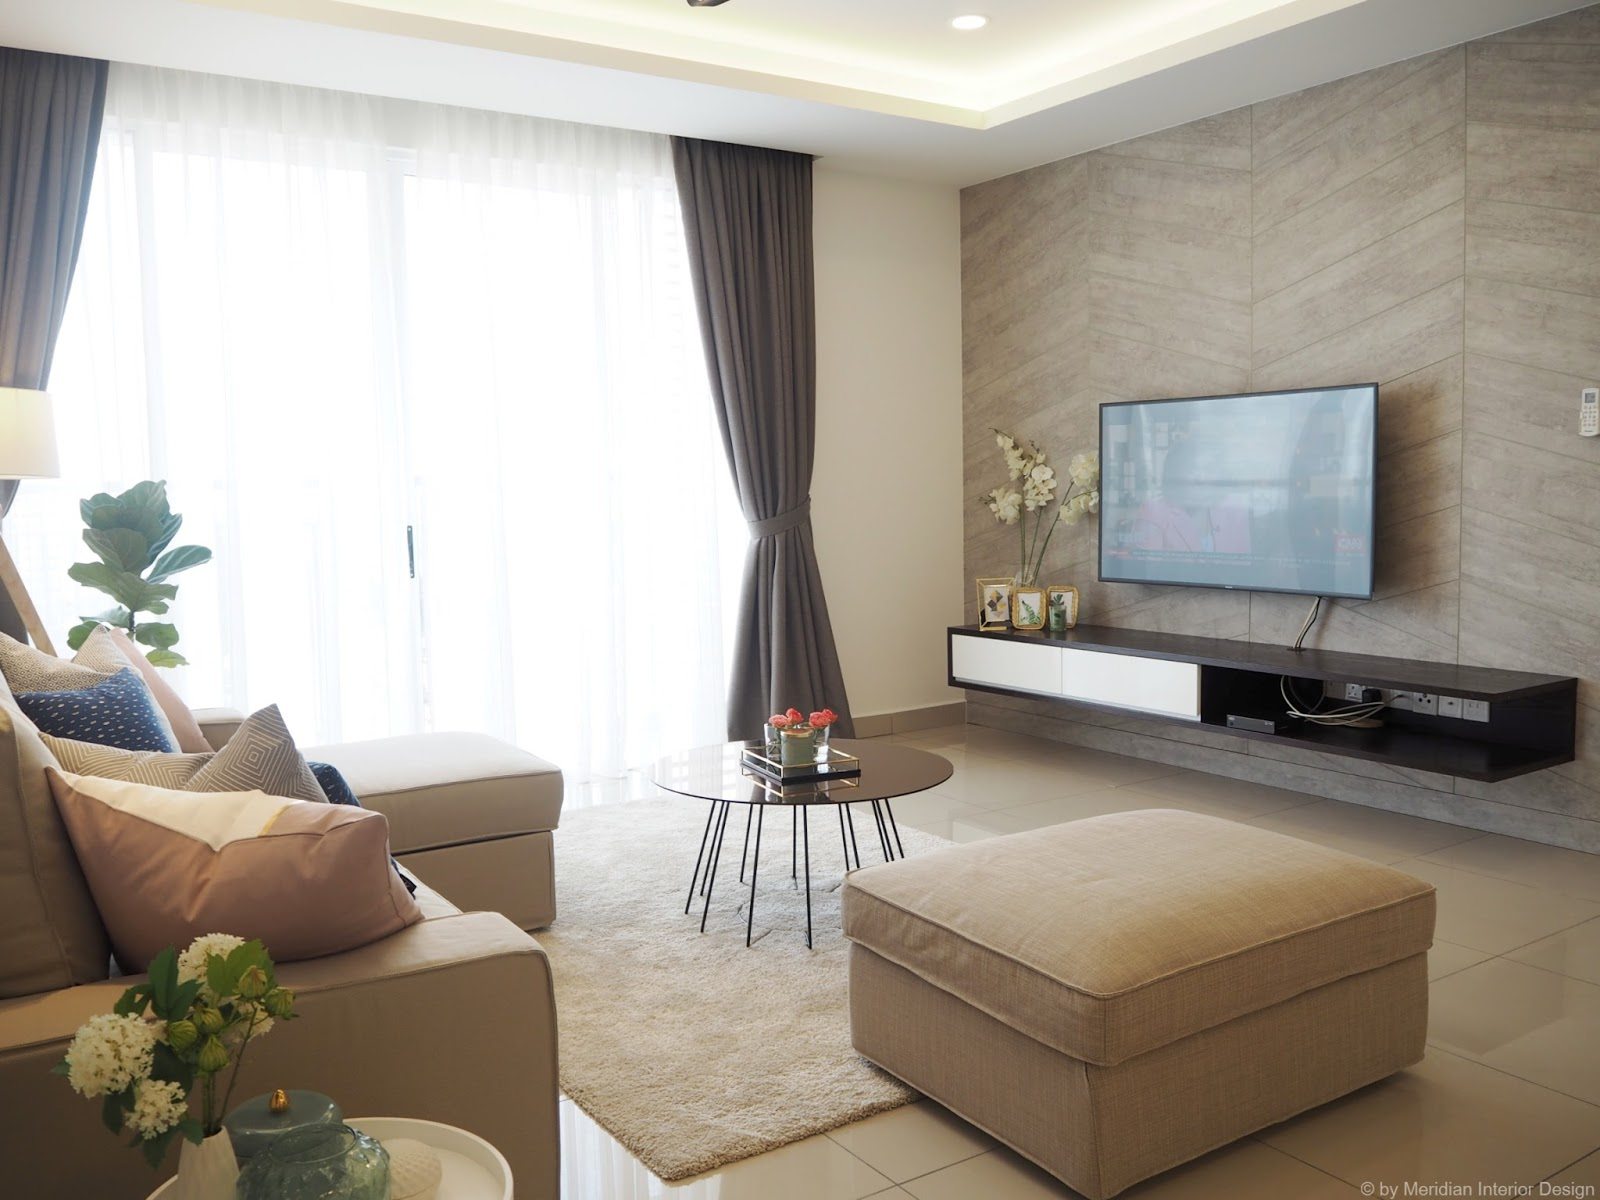 to see more of our popular projects click here - Malaysia Interior Design Blog